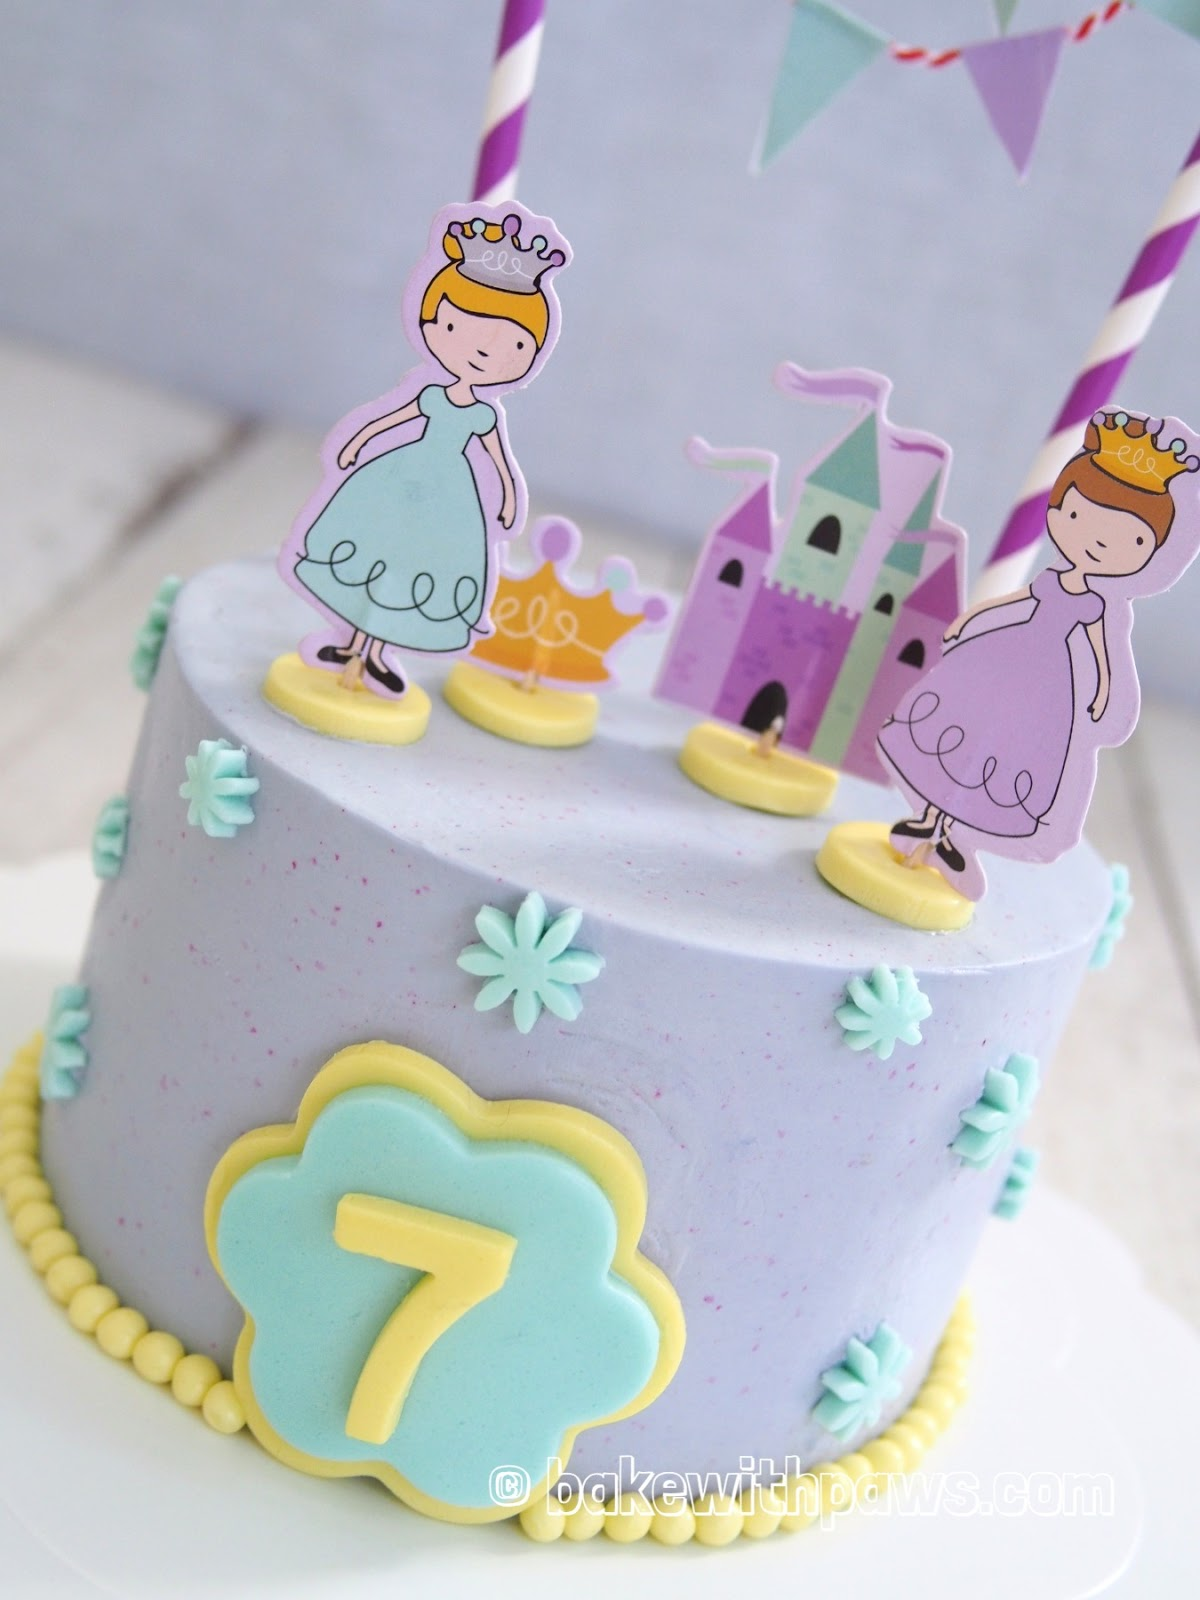 Princess Birthday Cake For My Niece It Is Two Layers Of 6 Inch Banana Pandan Chiffon And Icing With Swiss Meringue Buttercream Some Fondant